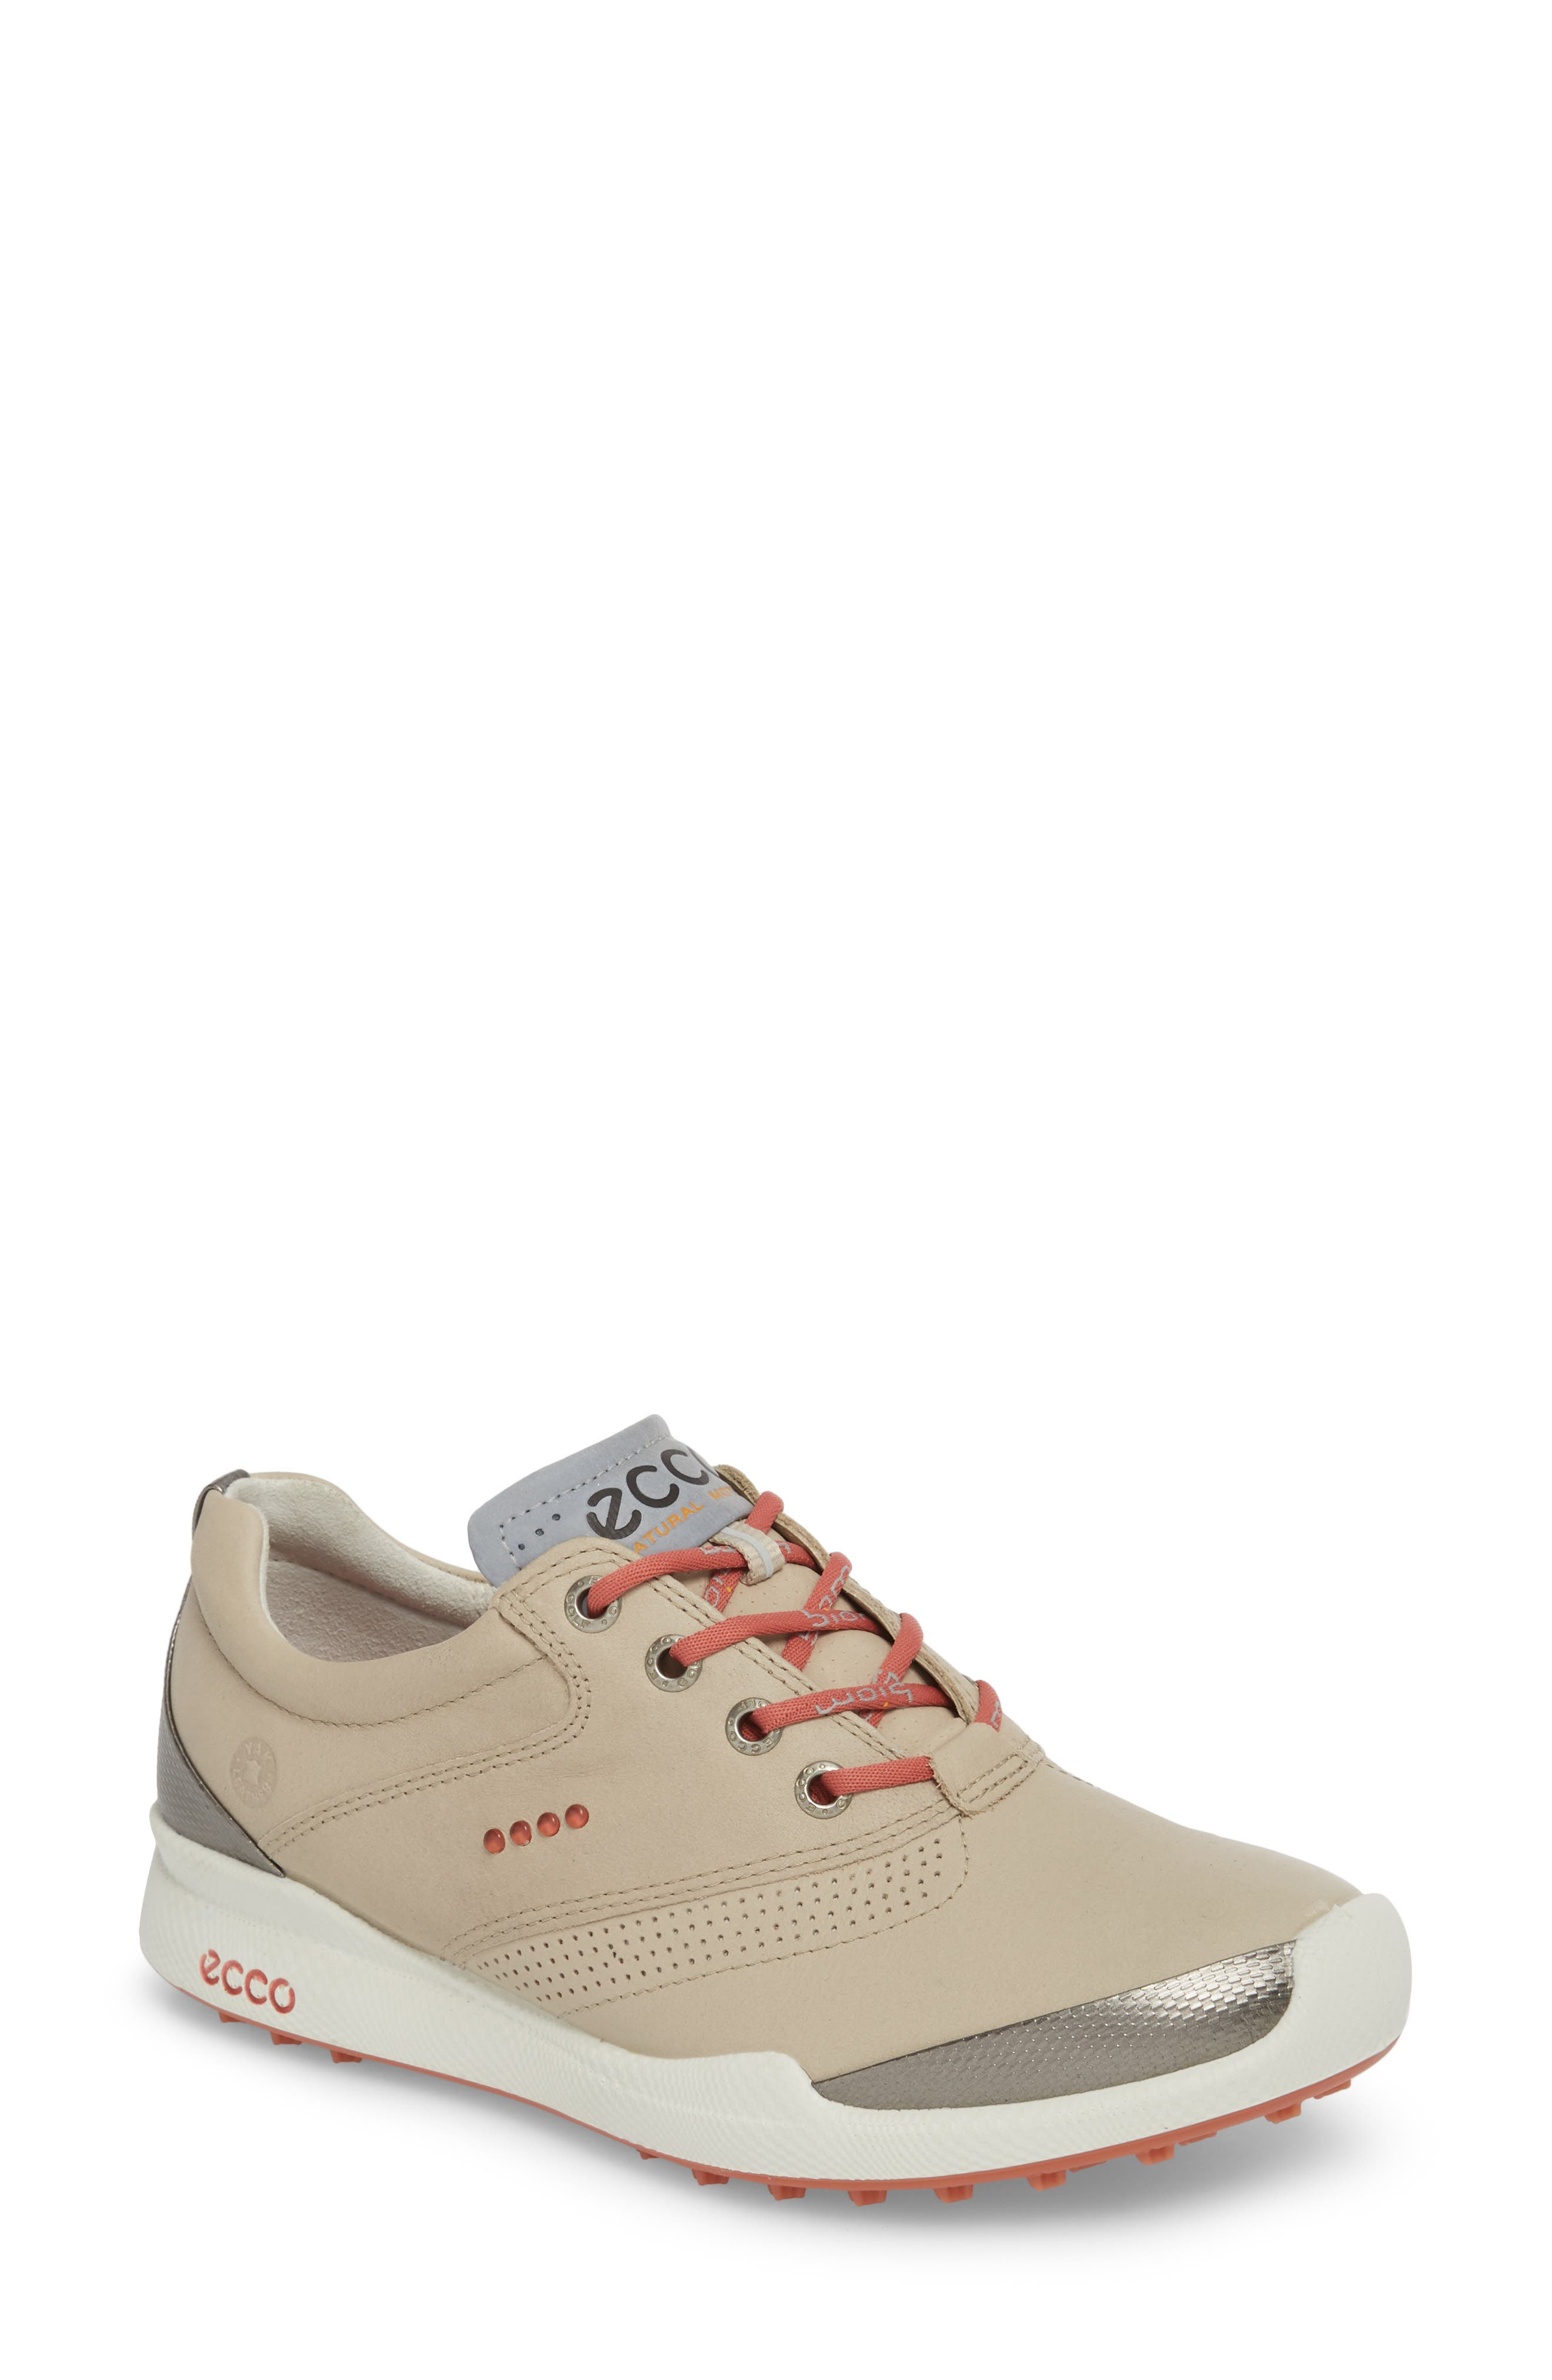 Biom Hybrid Golf Shoe,                         Main,                         color, Oyster Leather